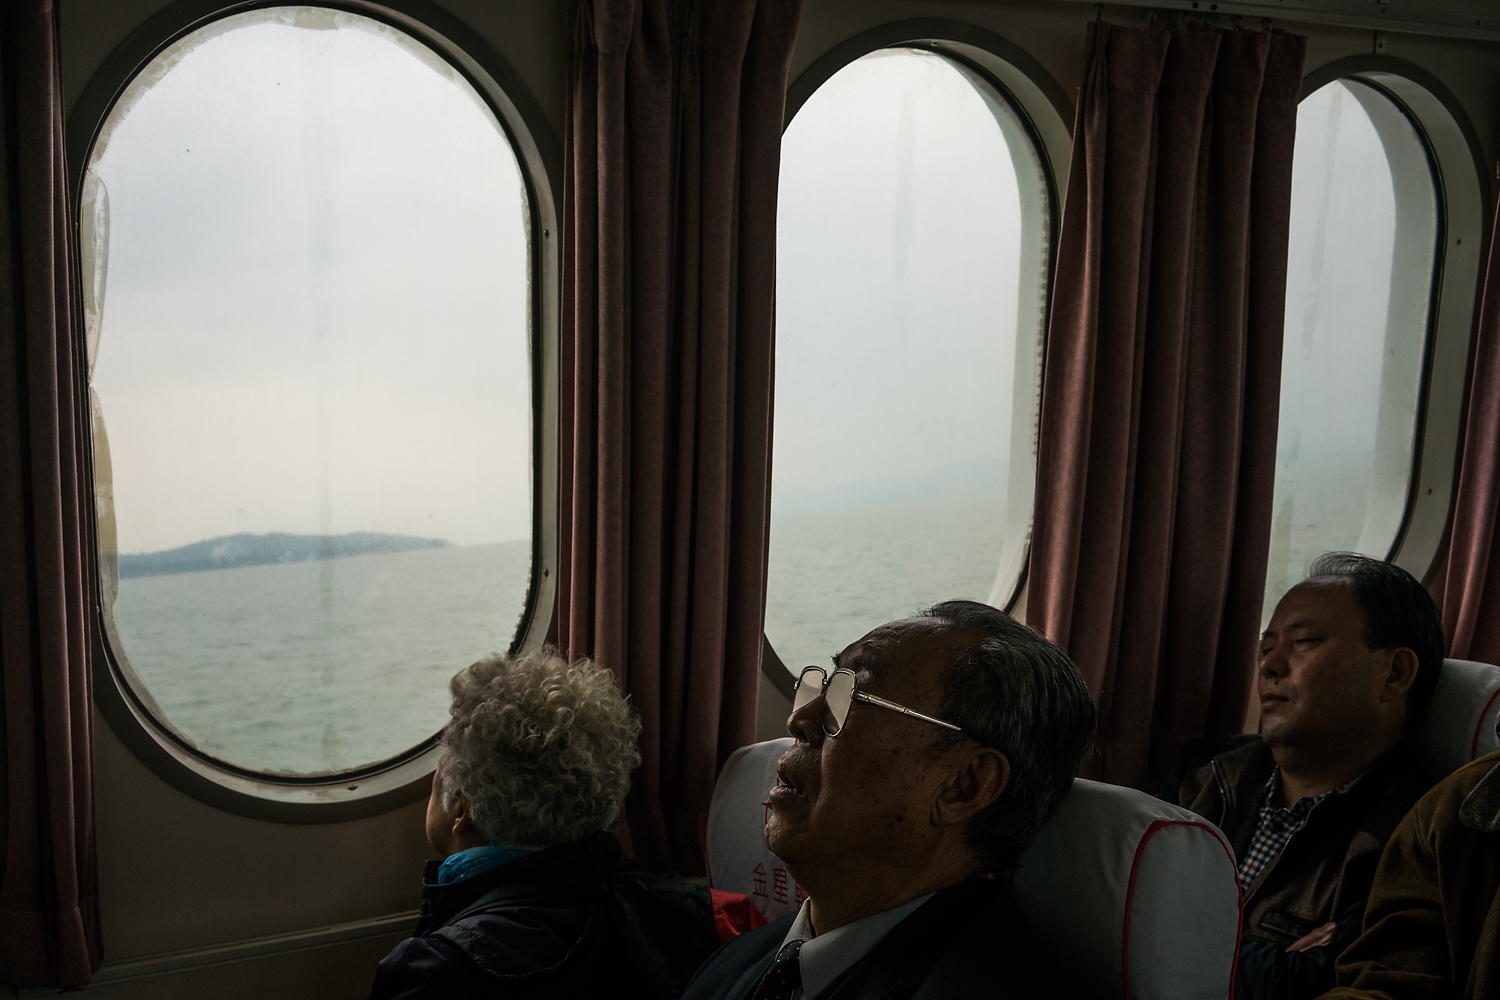 On the 30-minute ferry ride from Xiamen's Wutong ferry terminal to Kinmen, an elderly mainland Chinese tourist takes a nap while his female companion looks out the window as the boat crosses from Chinese to Taiwanese territory in the Taiwan Strait. The ferries were launched as part of the 'Mini-Three-Links' between China and Taiwan in 2001. More than 1.5 million passengers traveled by ferry in 2014 between Fujian, in China, and Kinmen. Since 2015, Chinese tourists traveling to Kinmen can easily get visas on arrival, a move to encourage mainland Chinese tourism.